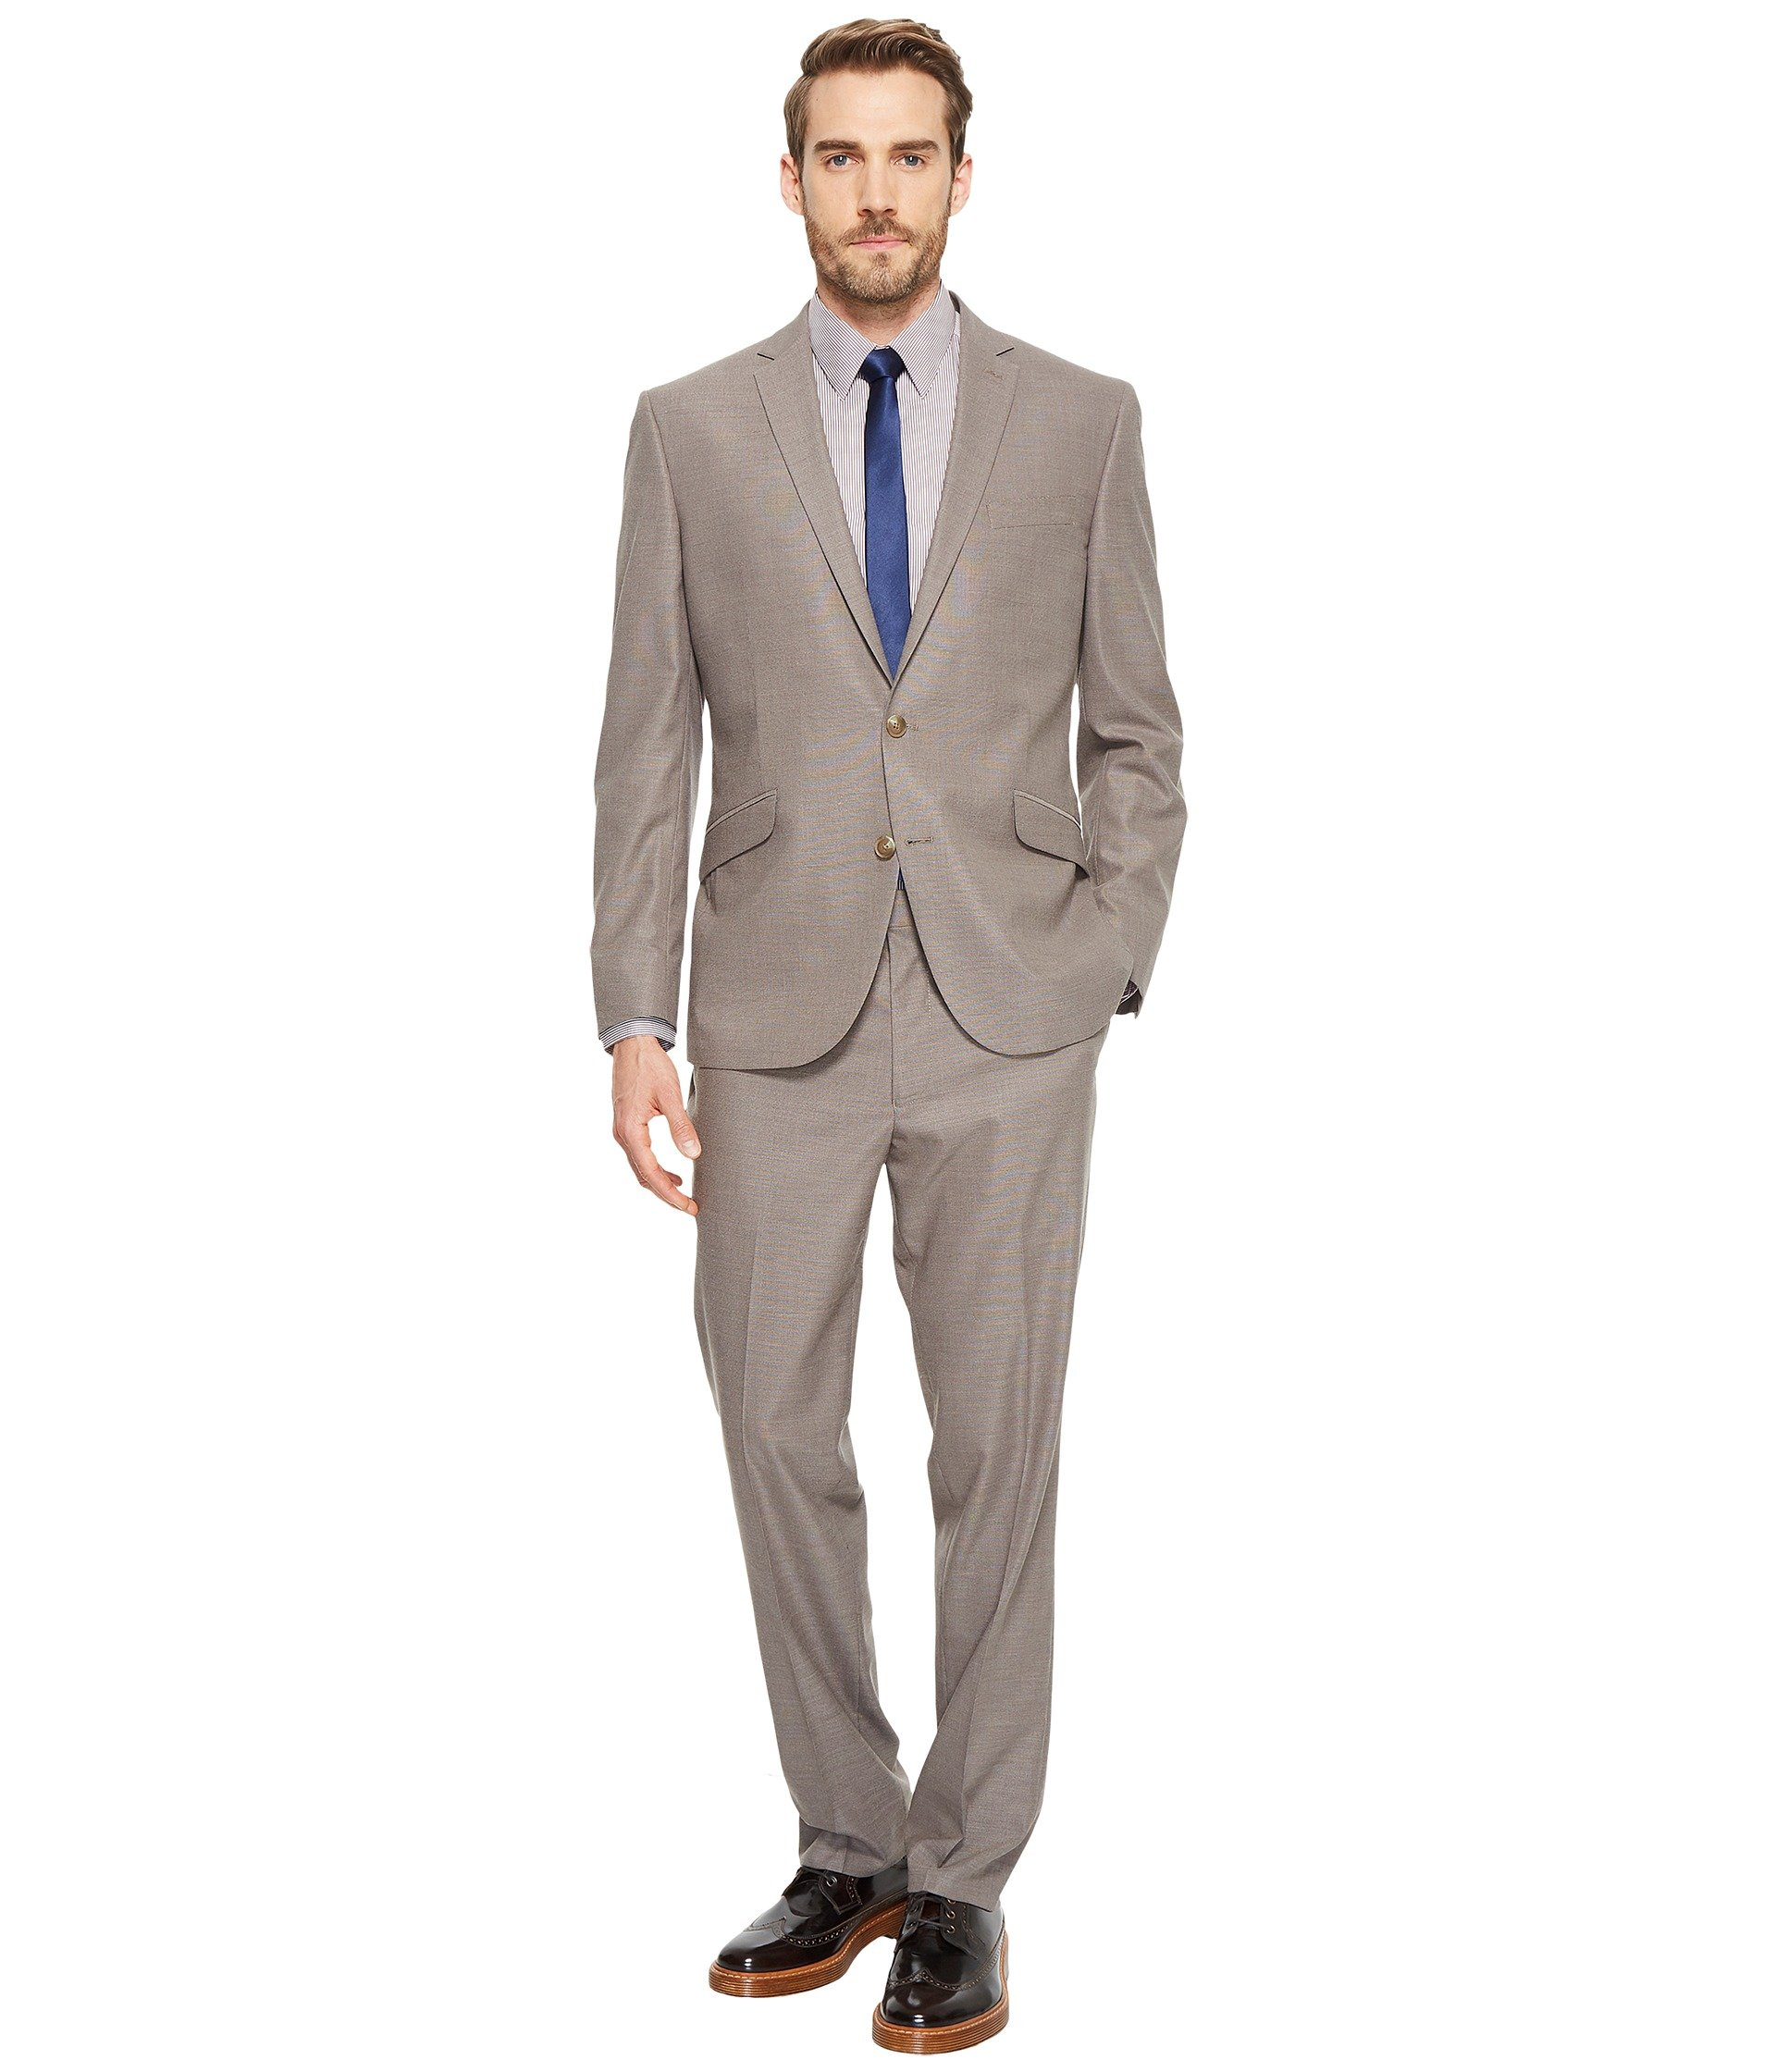 Vestido para Hombre Kenneth Cole Reaction Stretch Slim Fit Textured Pin Dot Suit  + Kenneth Cole Reaction en VeoyCompro.net